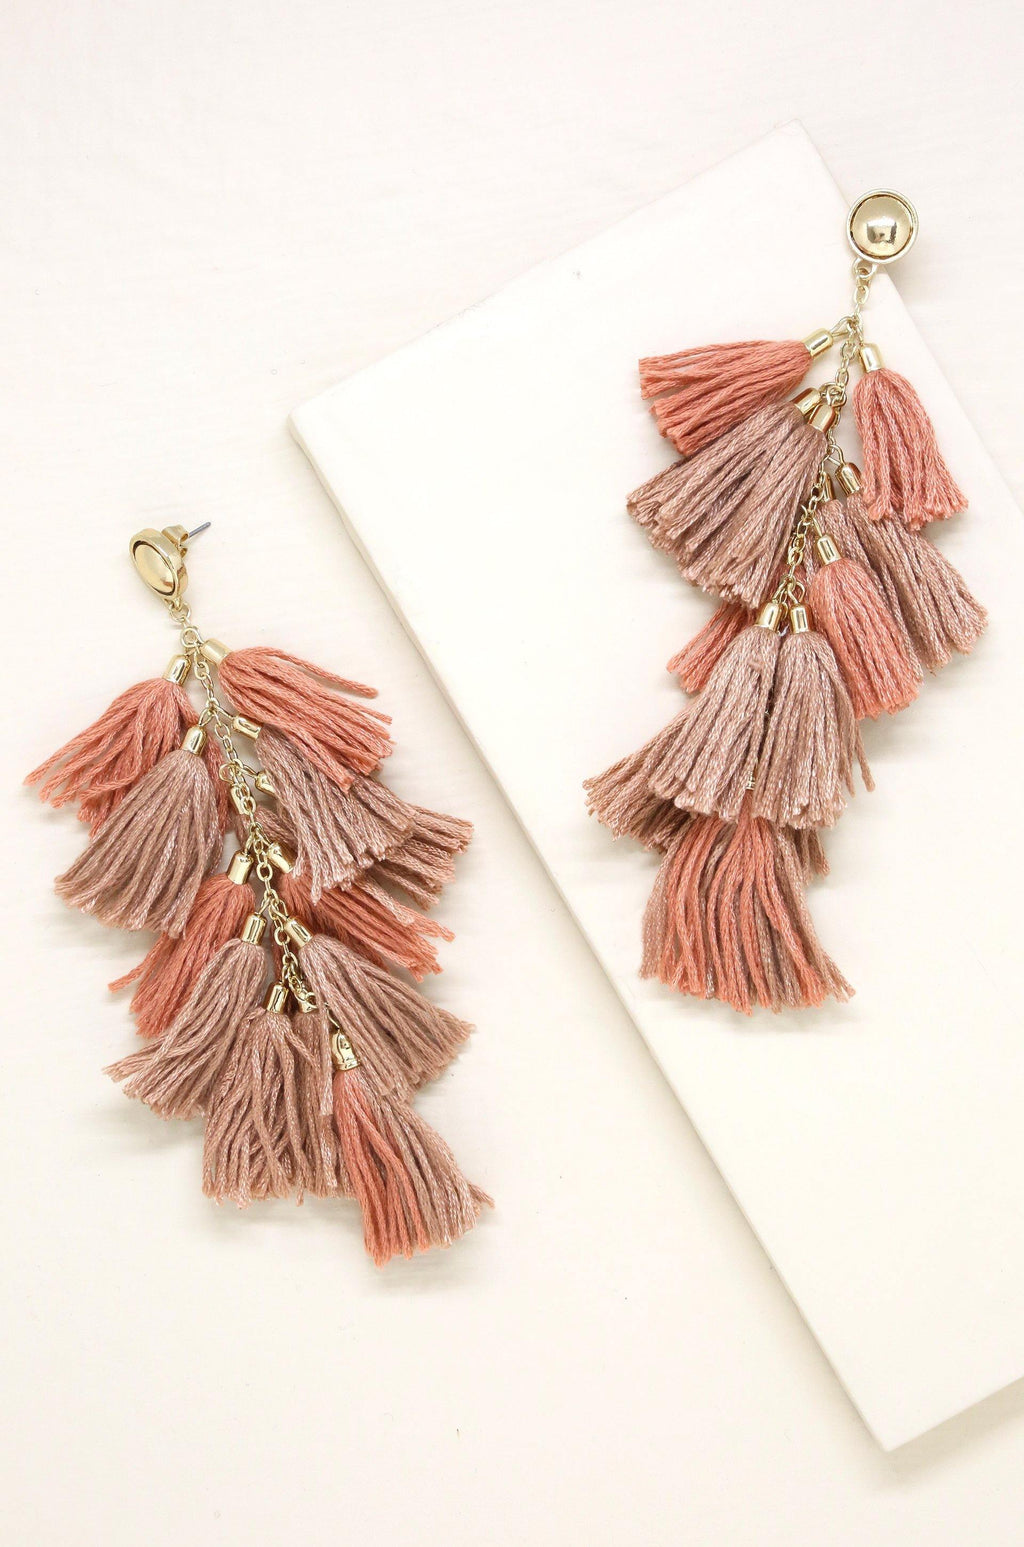 Time to Tassel Earrings in Taupe and Gold Jewelry Etikka